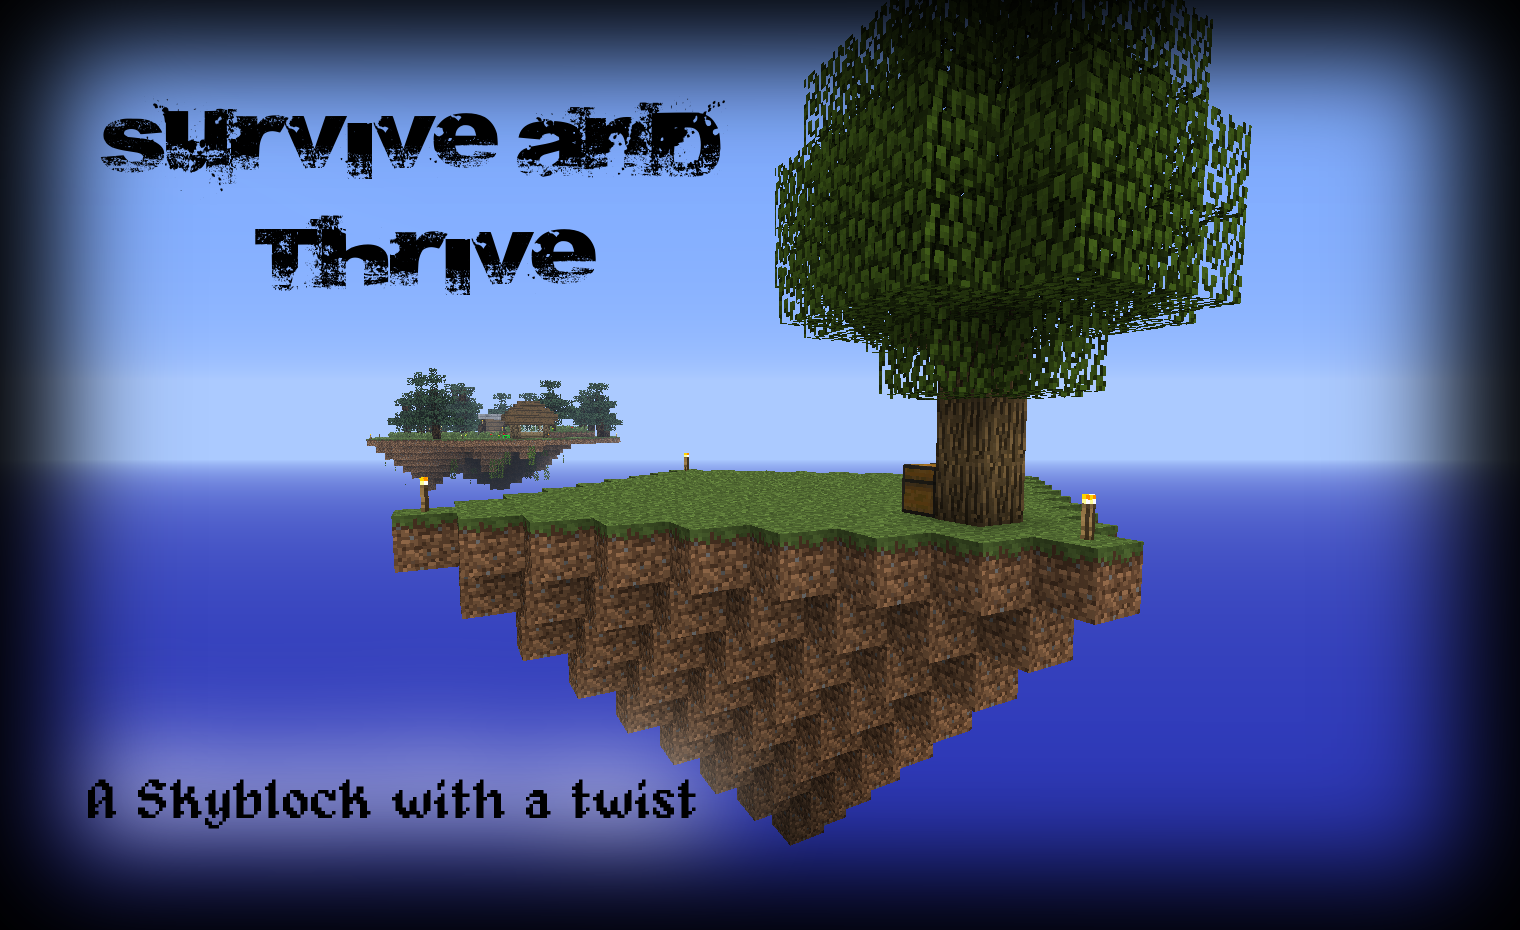 Survive and thrive minecraft map by xbox ds gameboy on deviantart survive and thrive minecraft map by xbox ds gameboy baditri Gallery